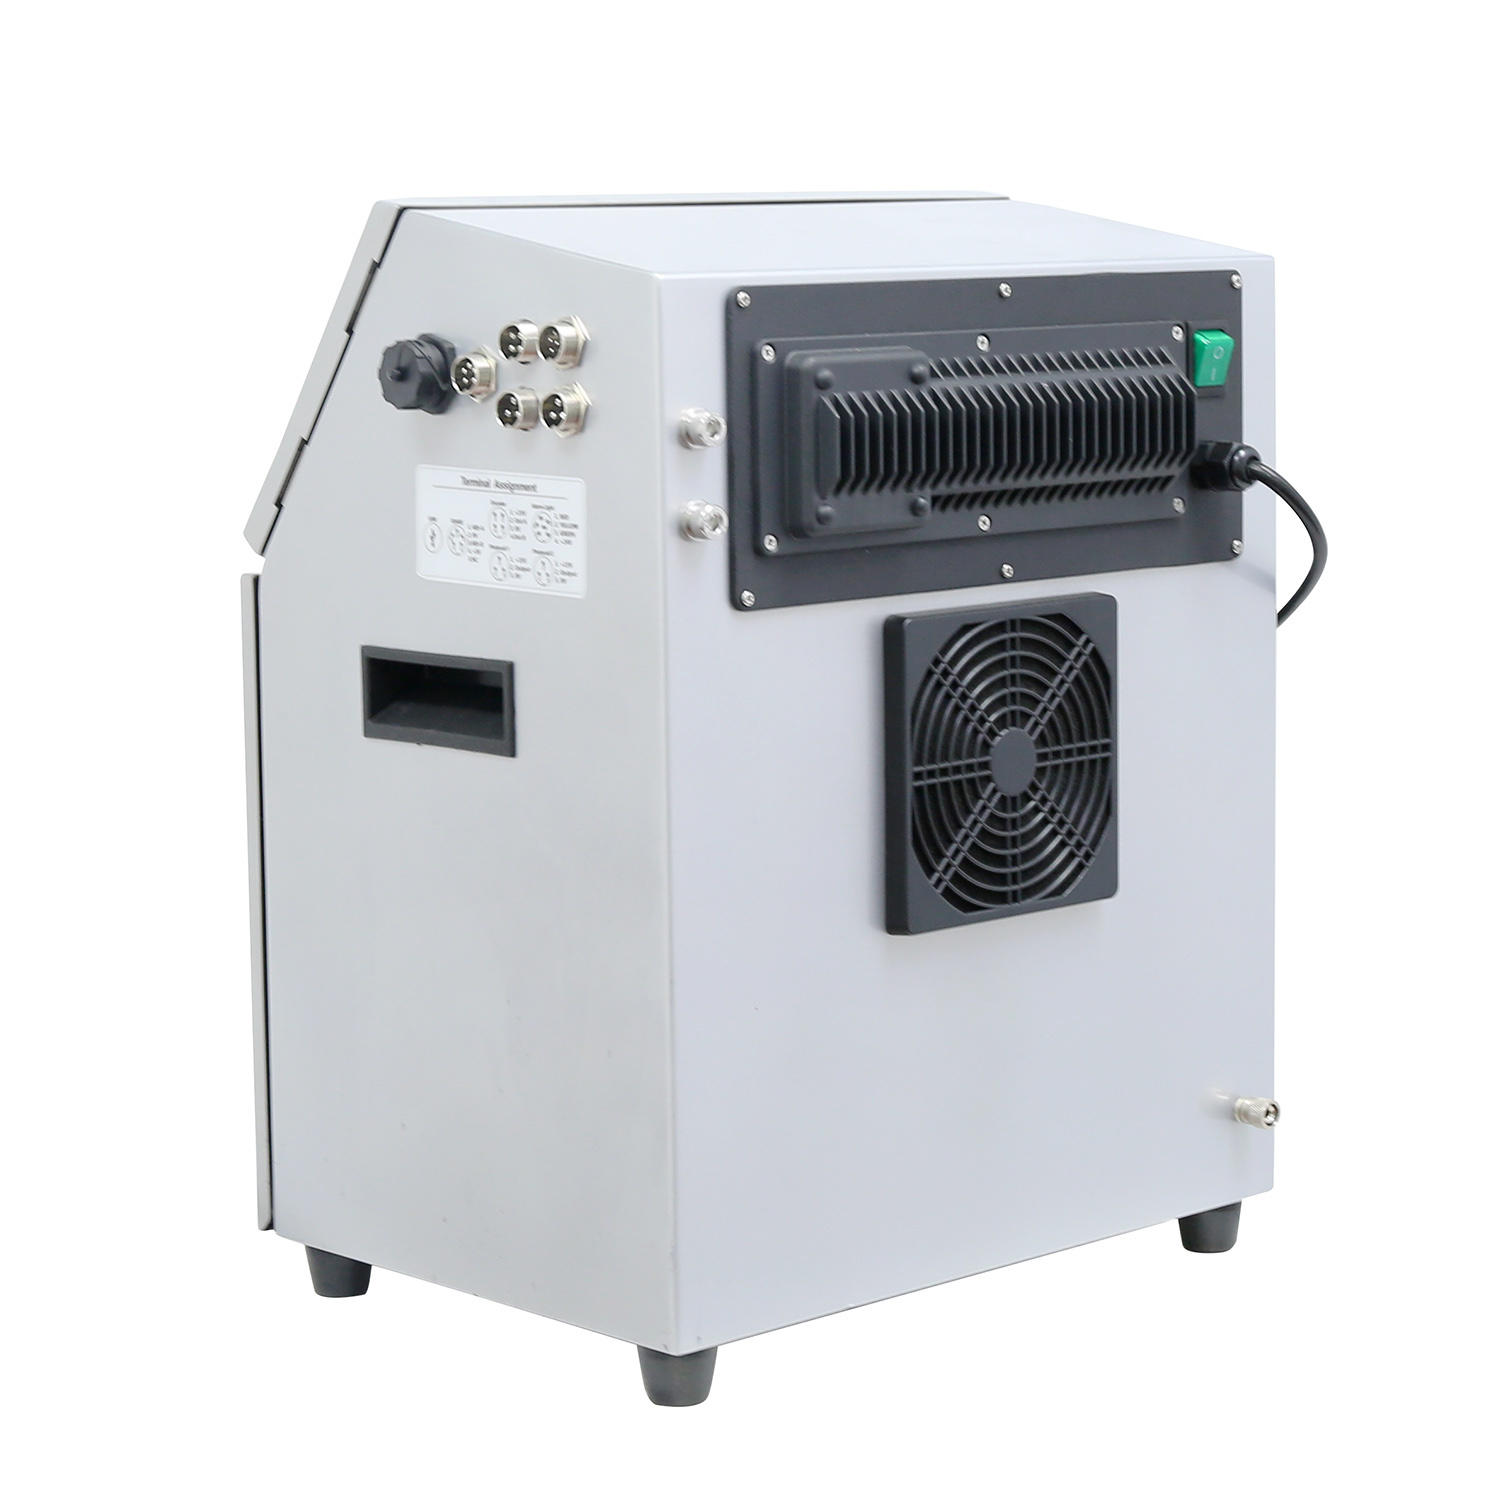 Lead Tech Lt800 Digital Printing Machine